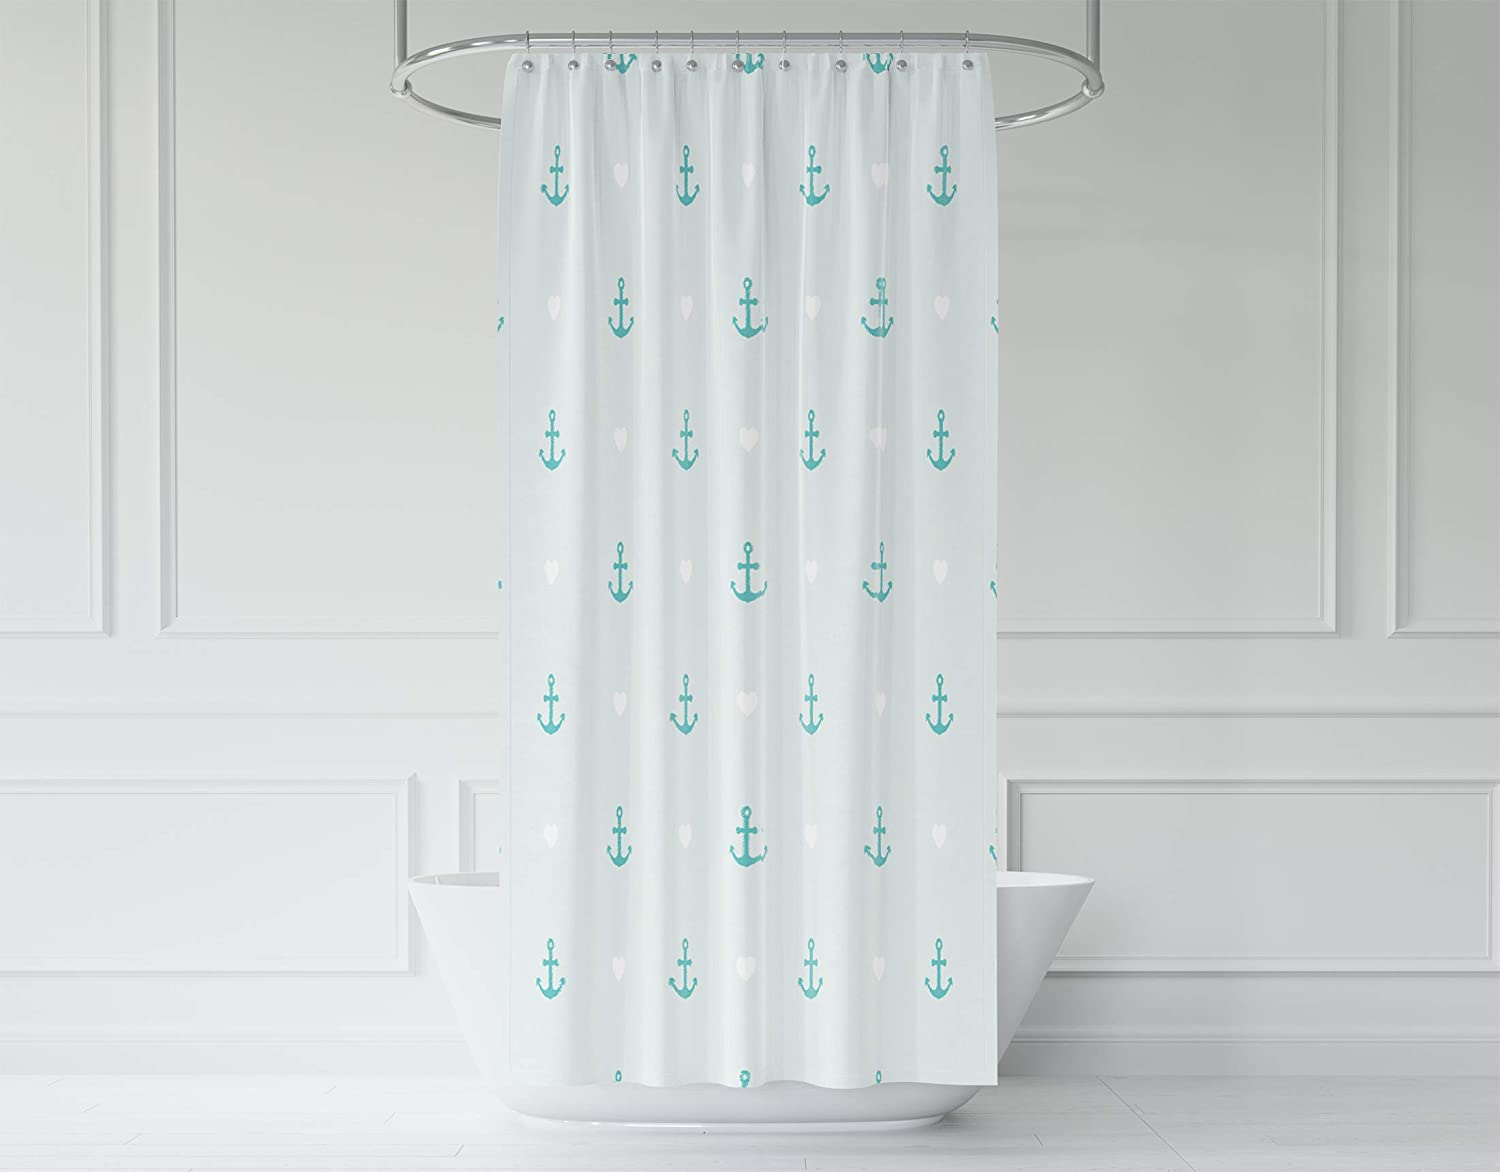 Pamime Pattern Of Anchor And Hearts Use To Create Quilting Shower Curtain 72X72Inches For Bathroom With WaterproofMildew Resistant Eco Friendly